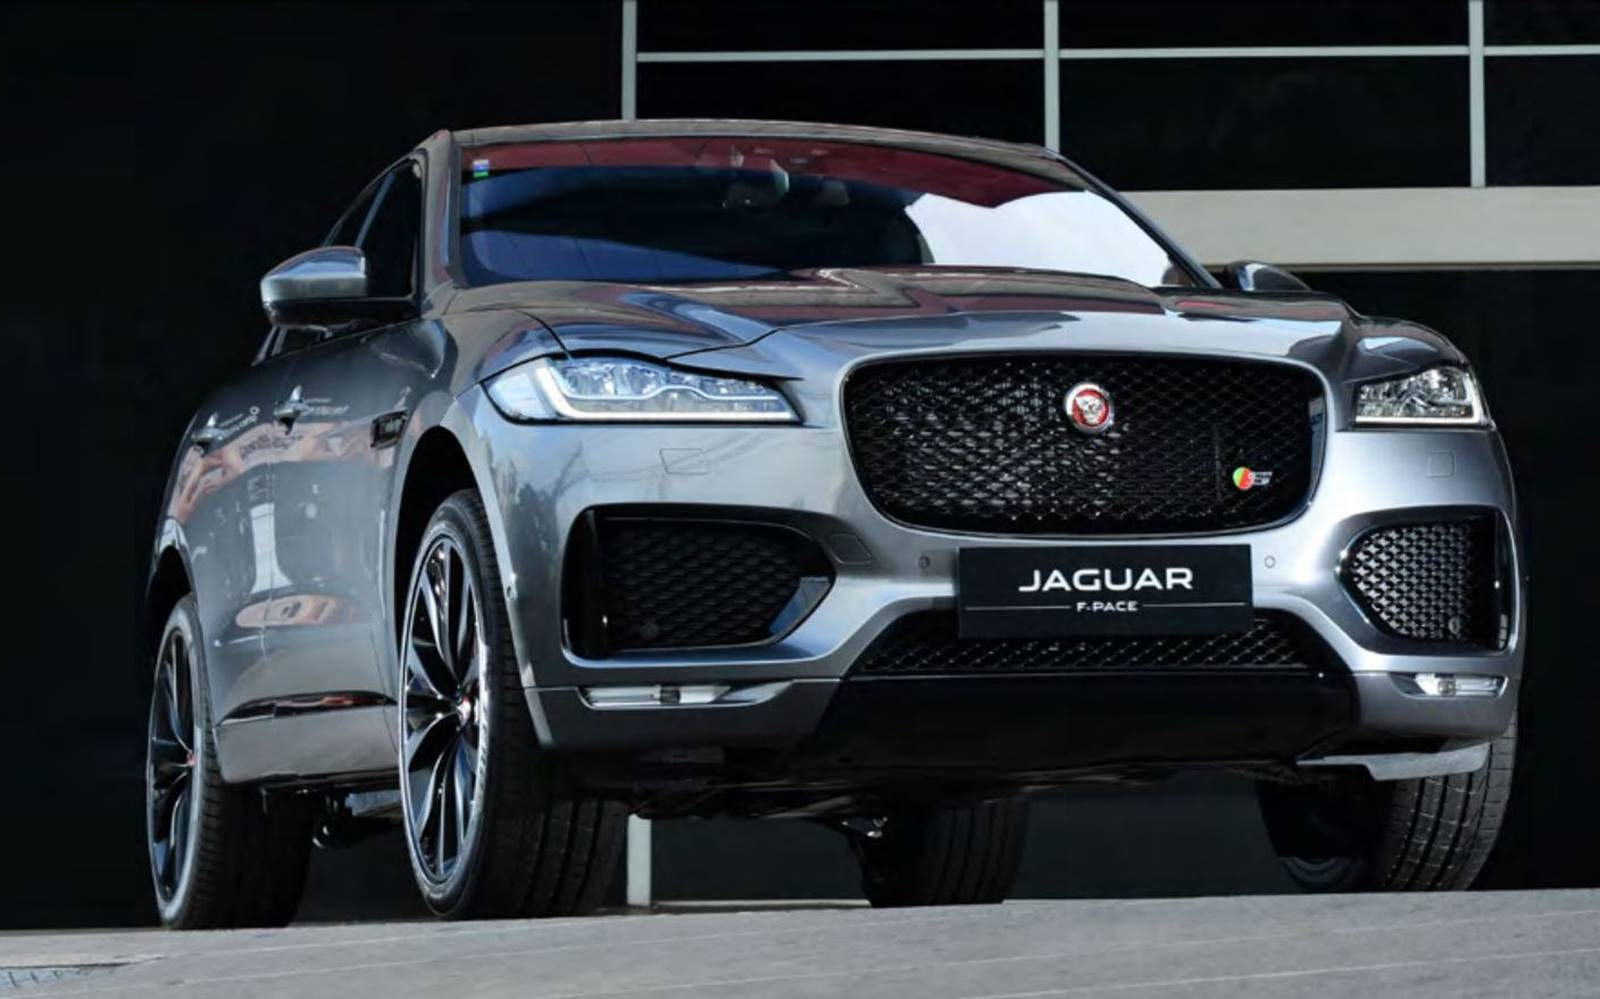 jaguar f pace suv de luxo chega ao brasil a r 309 mil car blog br. Black Bedroom Furniture Sets. Home Design Ideas